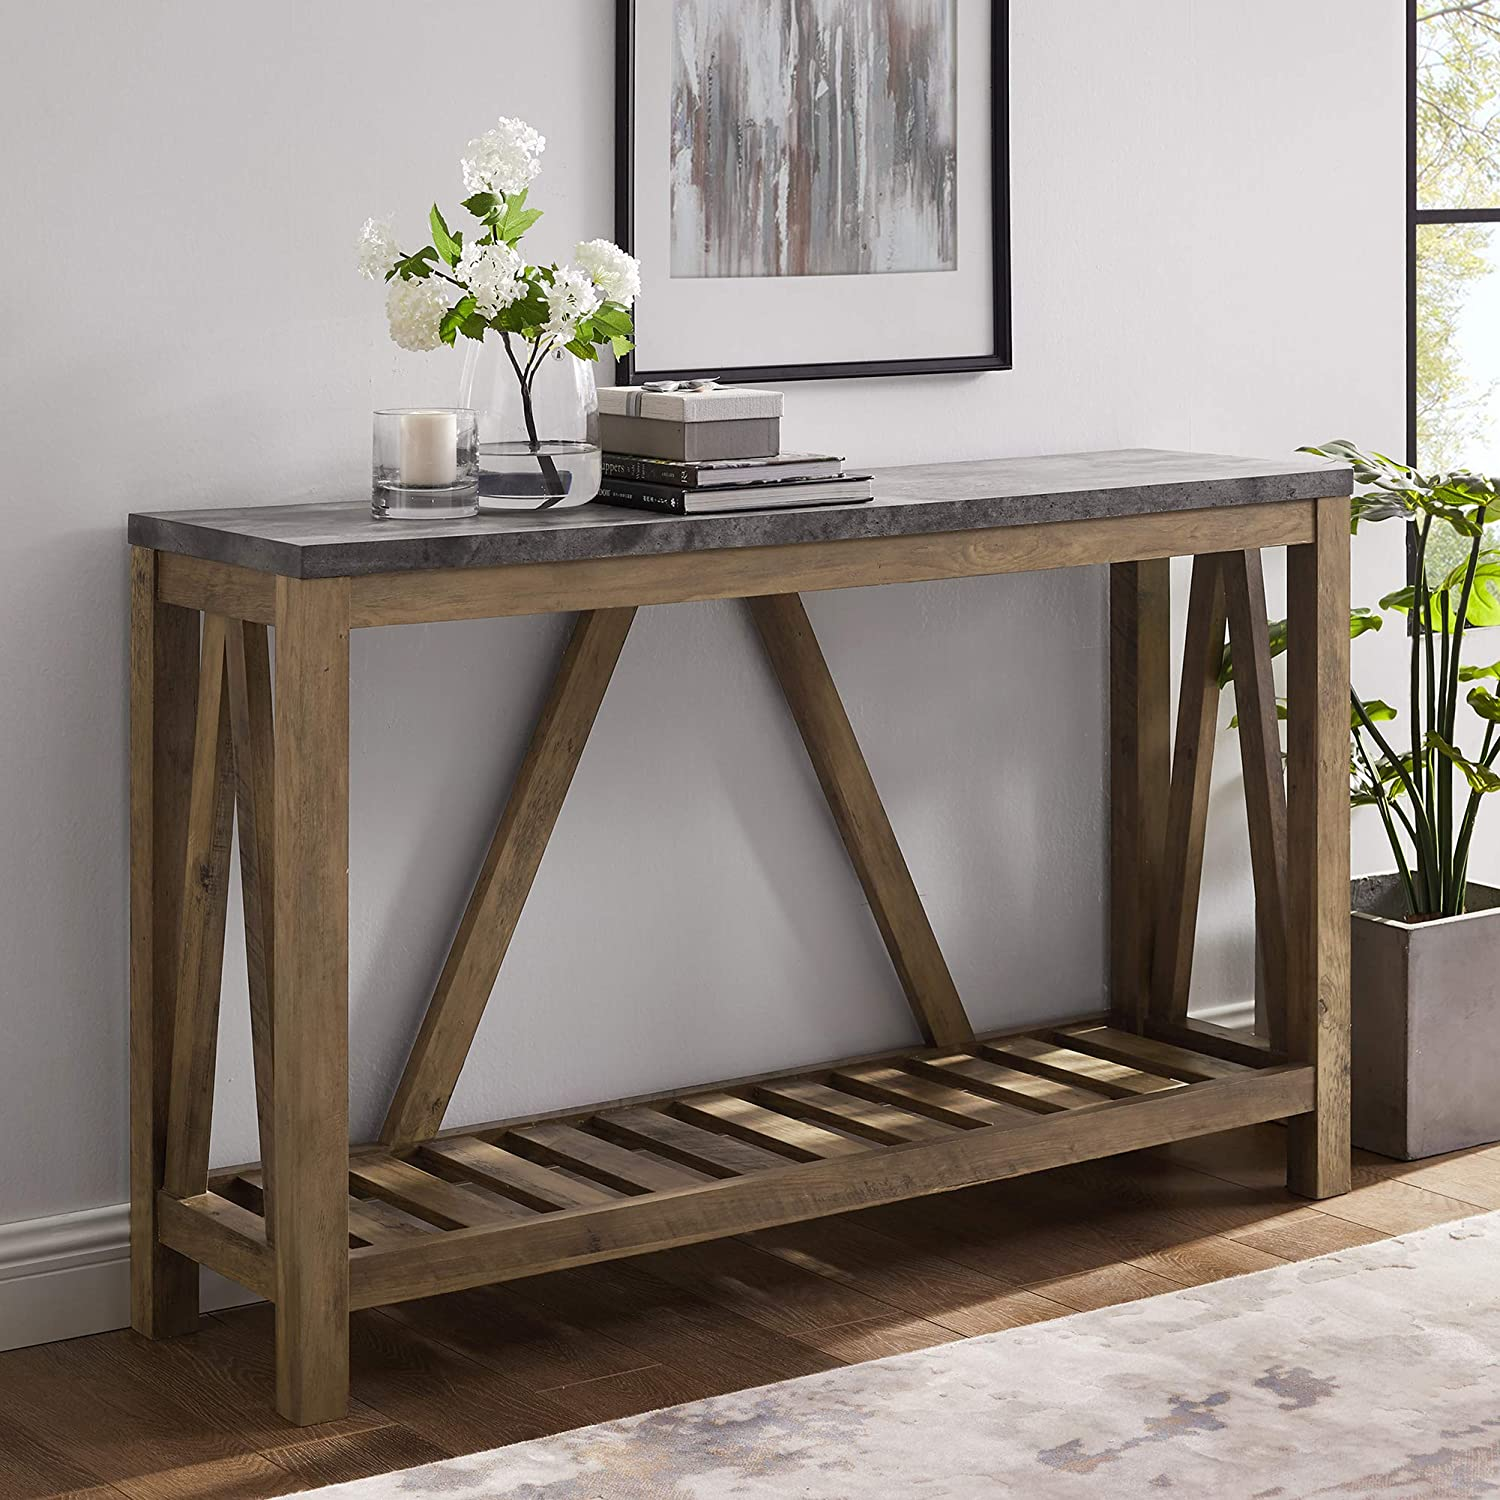 Walker Edison Furniture Modern Farmhouse Accent Entryway Table, 52 Inch, Grey Concrete